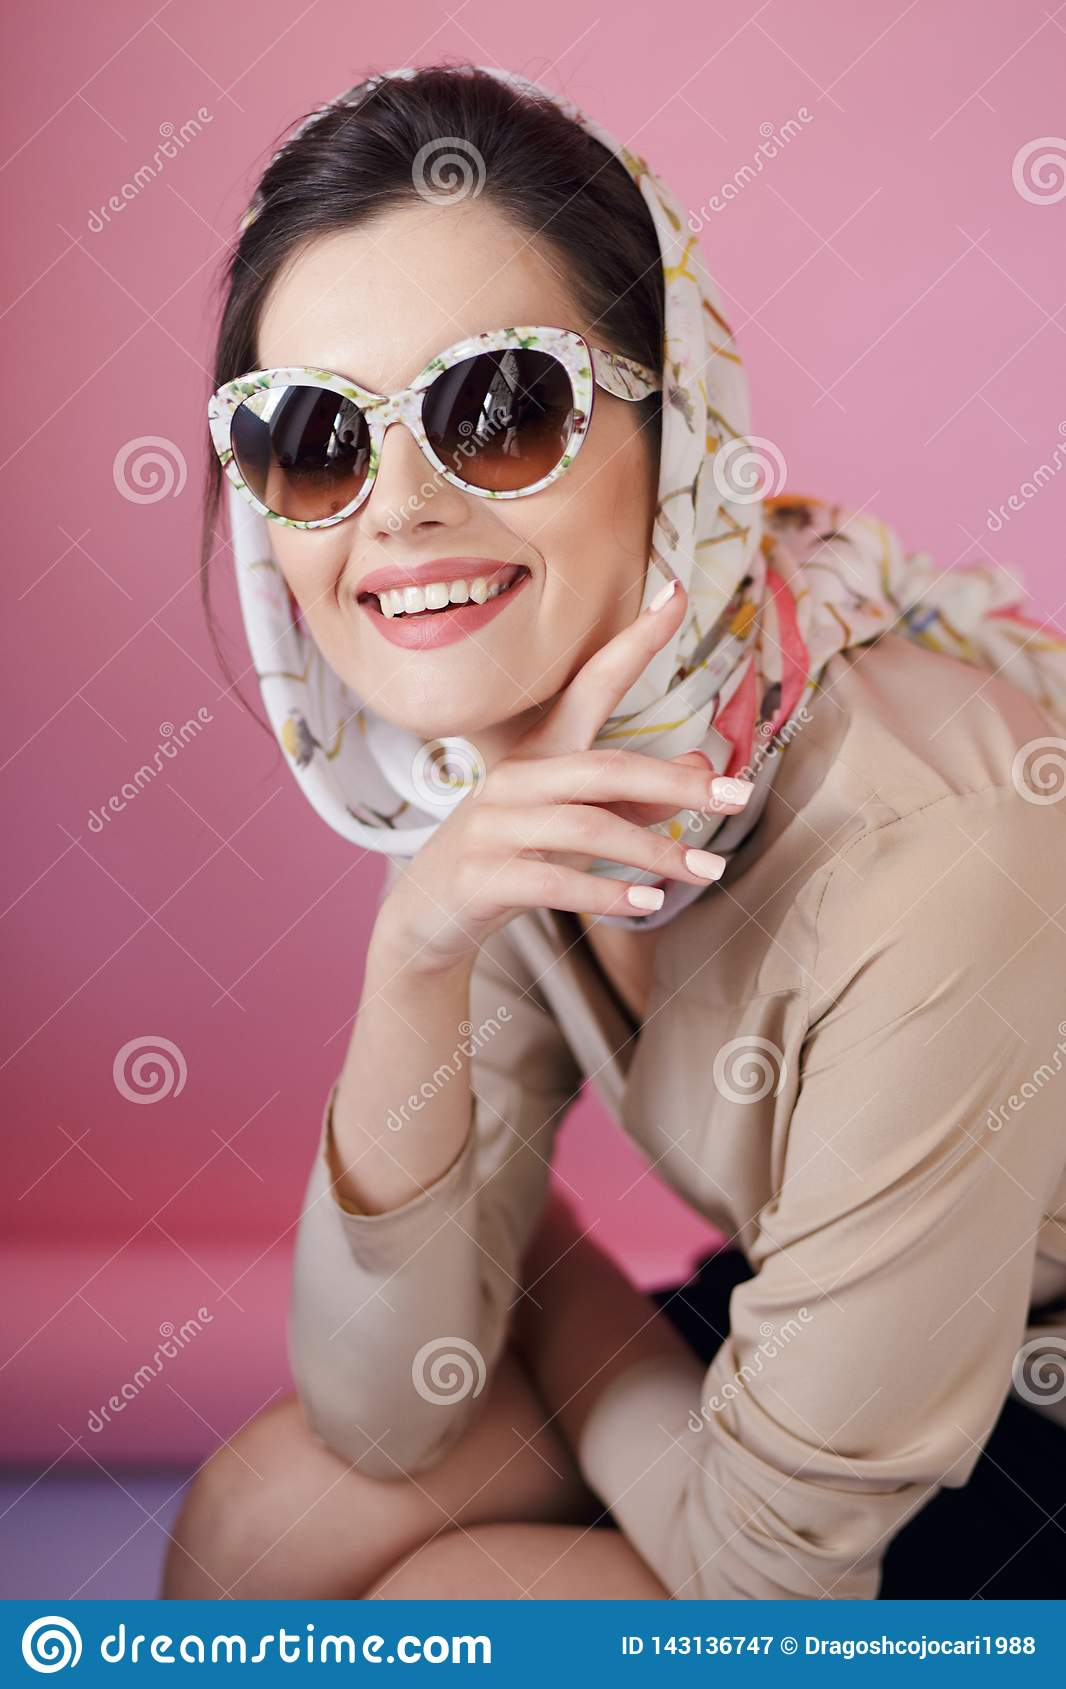 Cheerful beautiful woman earrings in fashionable eyeglasses and delicate silk scarf,  on a pink background.